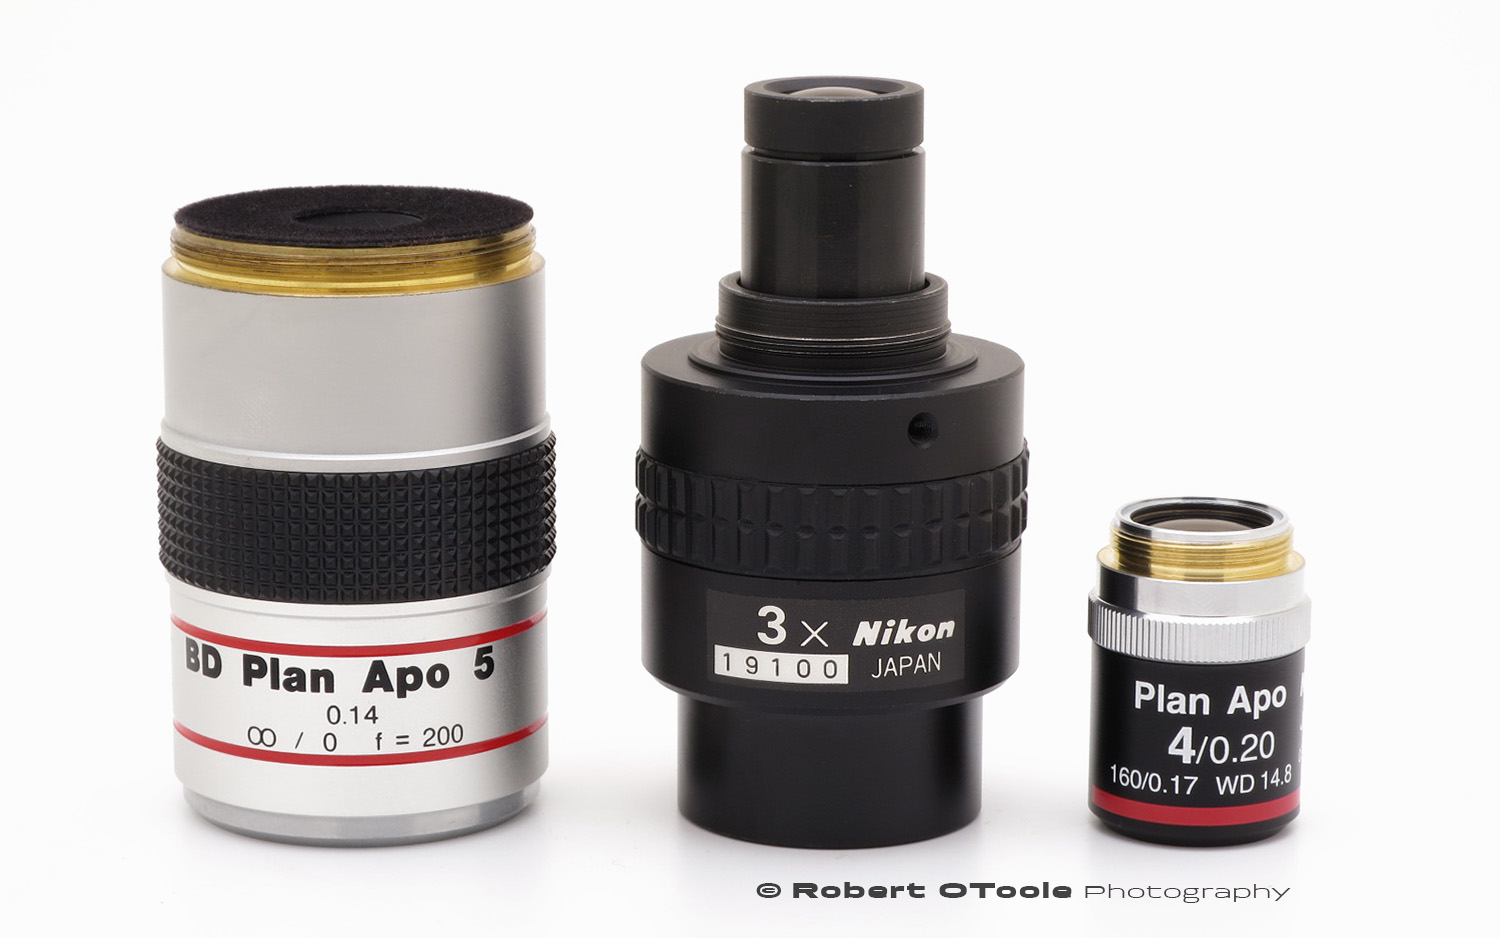 The Mitutoyo BD Plan APO 5X, Nikon EDF20030 Toolmakers 3X objective, and Nikon Plan APO 4X 0.20 finite objective.